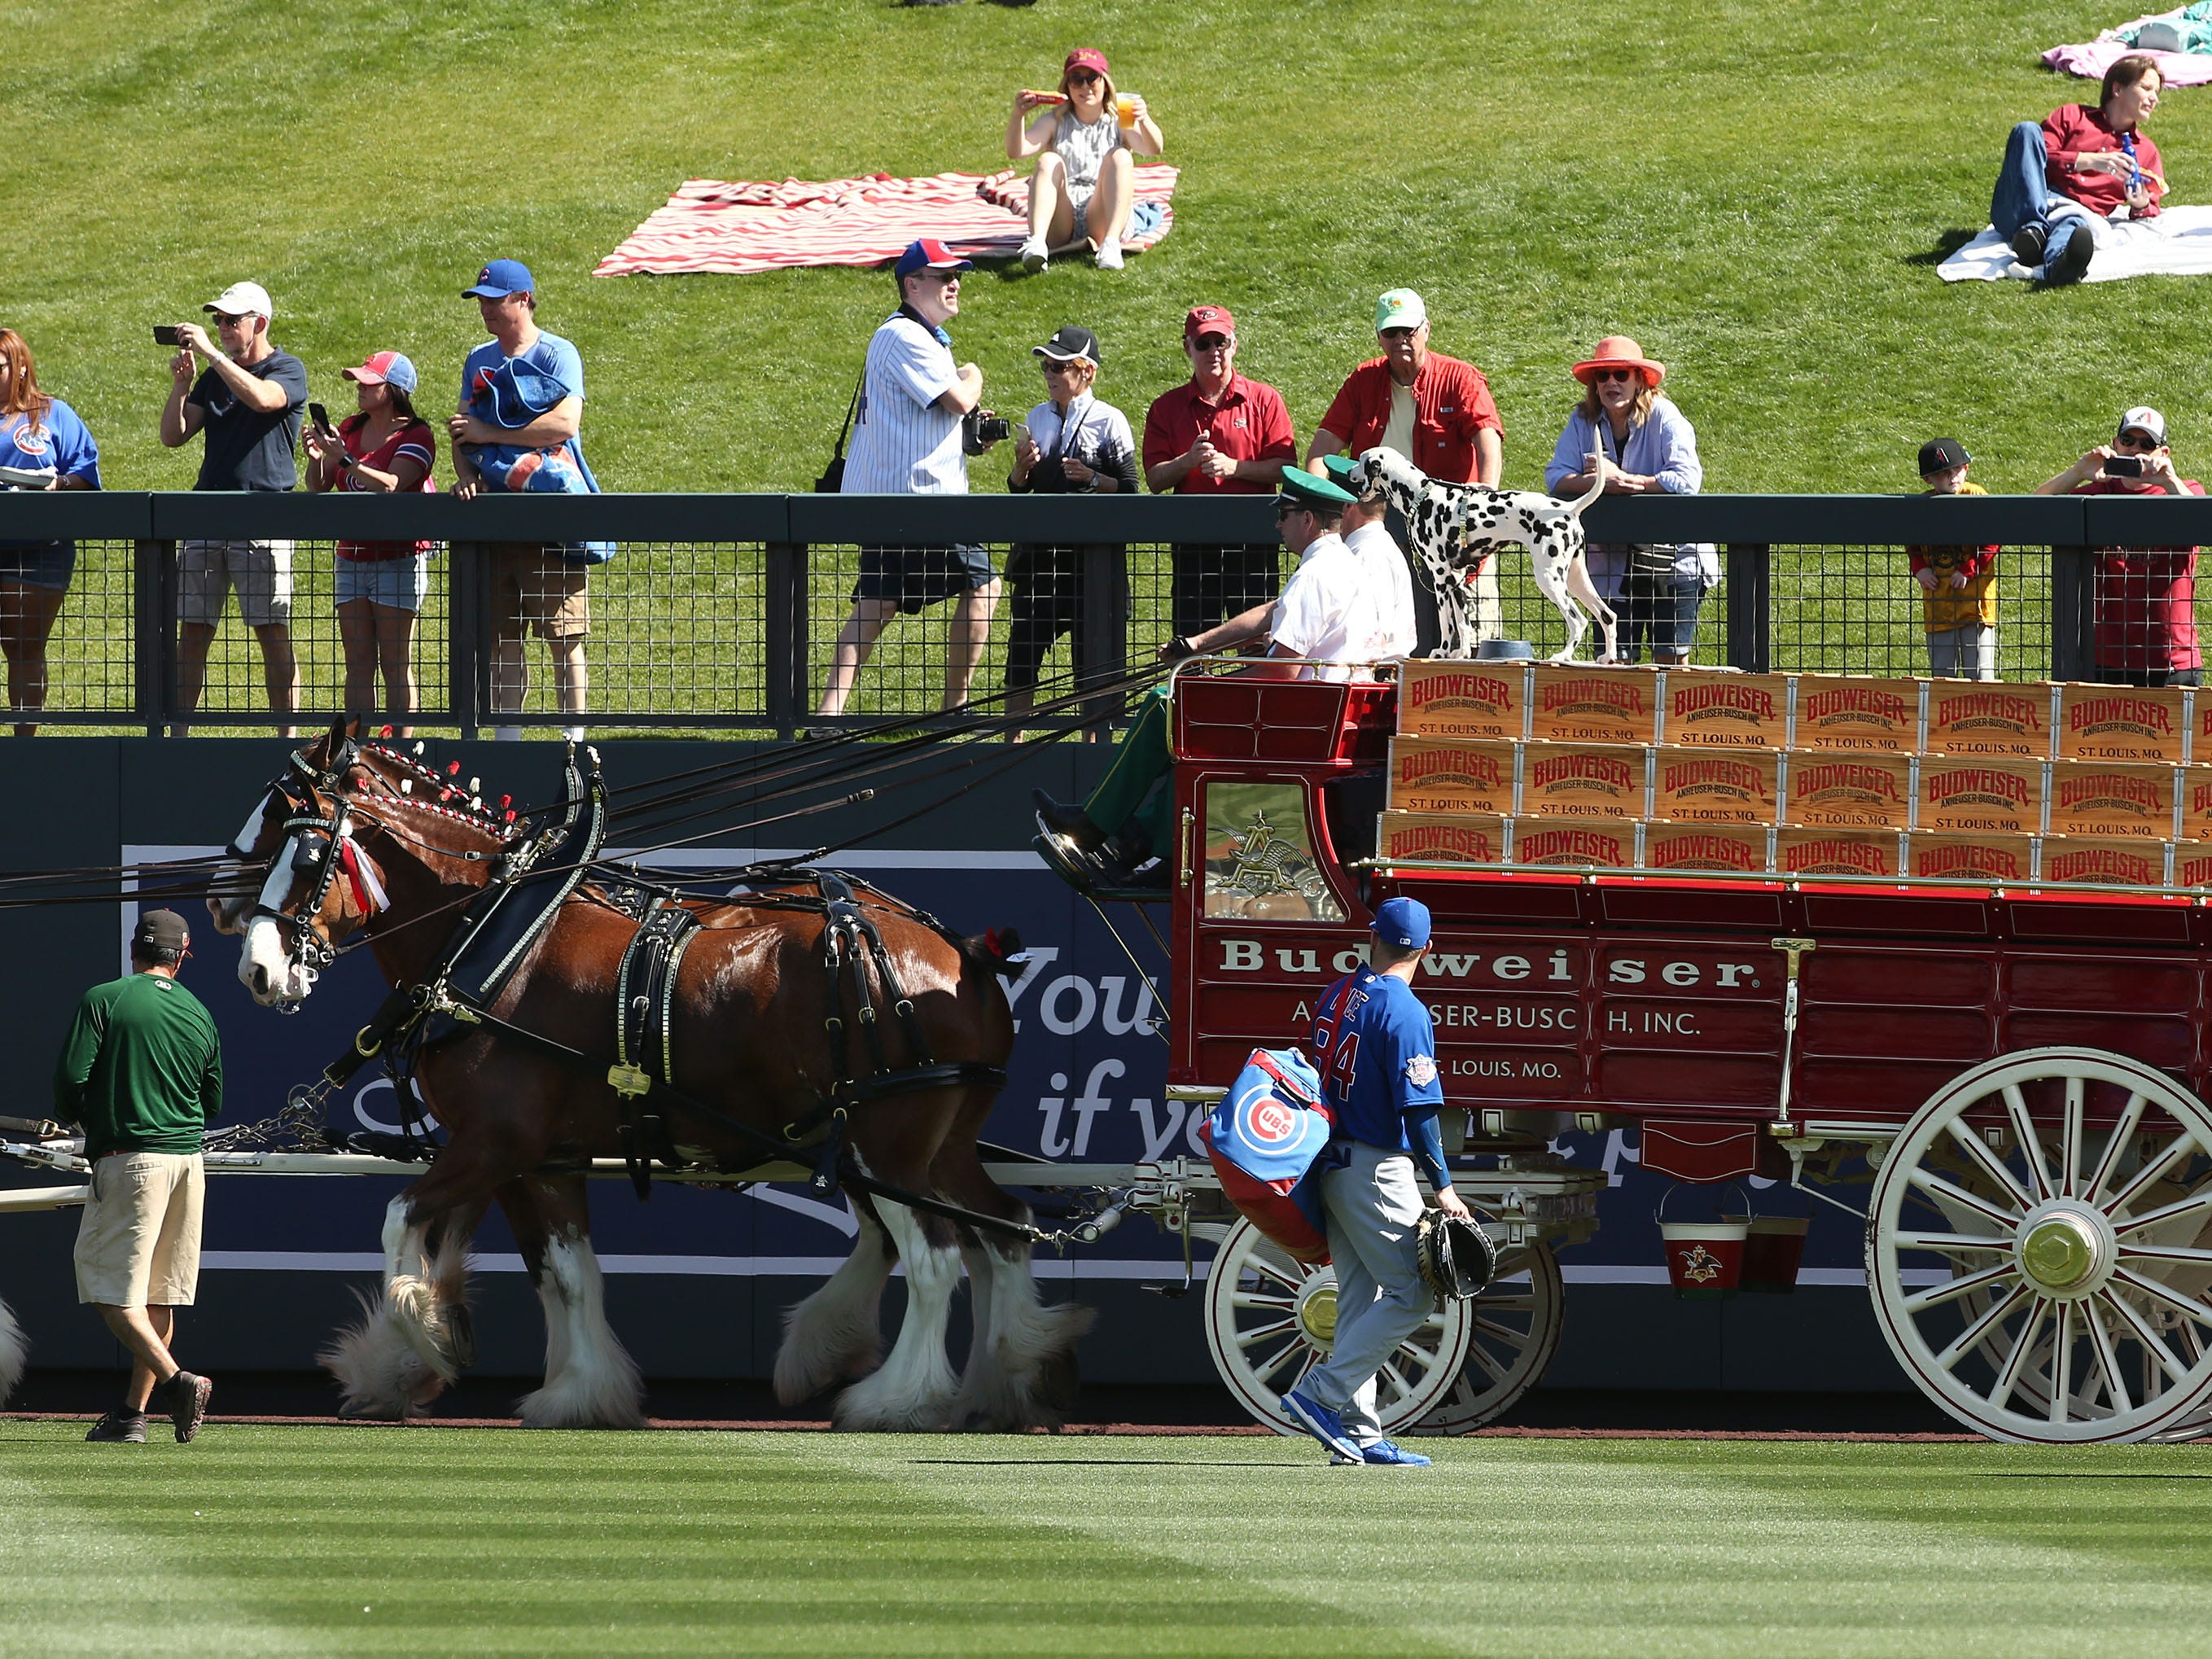 The Budweiser Clydesdales make an appearance at the Arizona Diamondbacks spring training game on Mar. 1, 2019 at Salt River Fields in Scottsdale, Ariz.